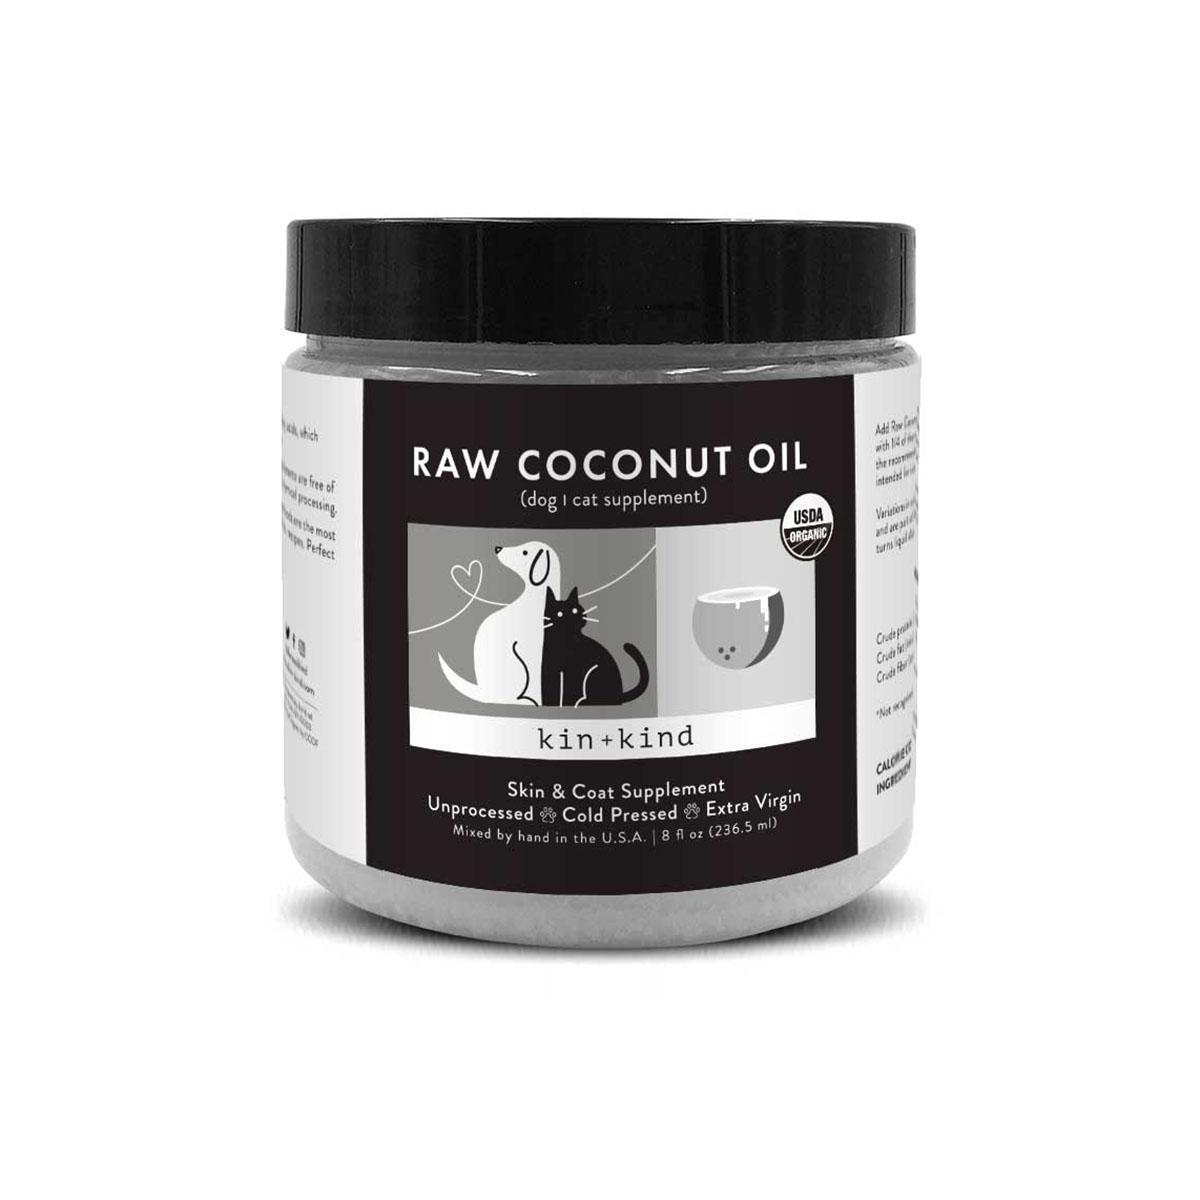 kin+kind Raw Coconut Oil Organic Skin & Coat Supplement For Dogs & Cats